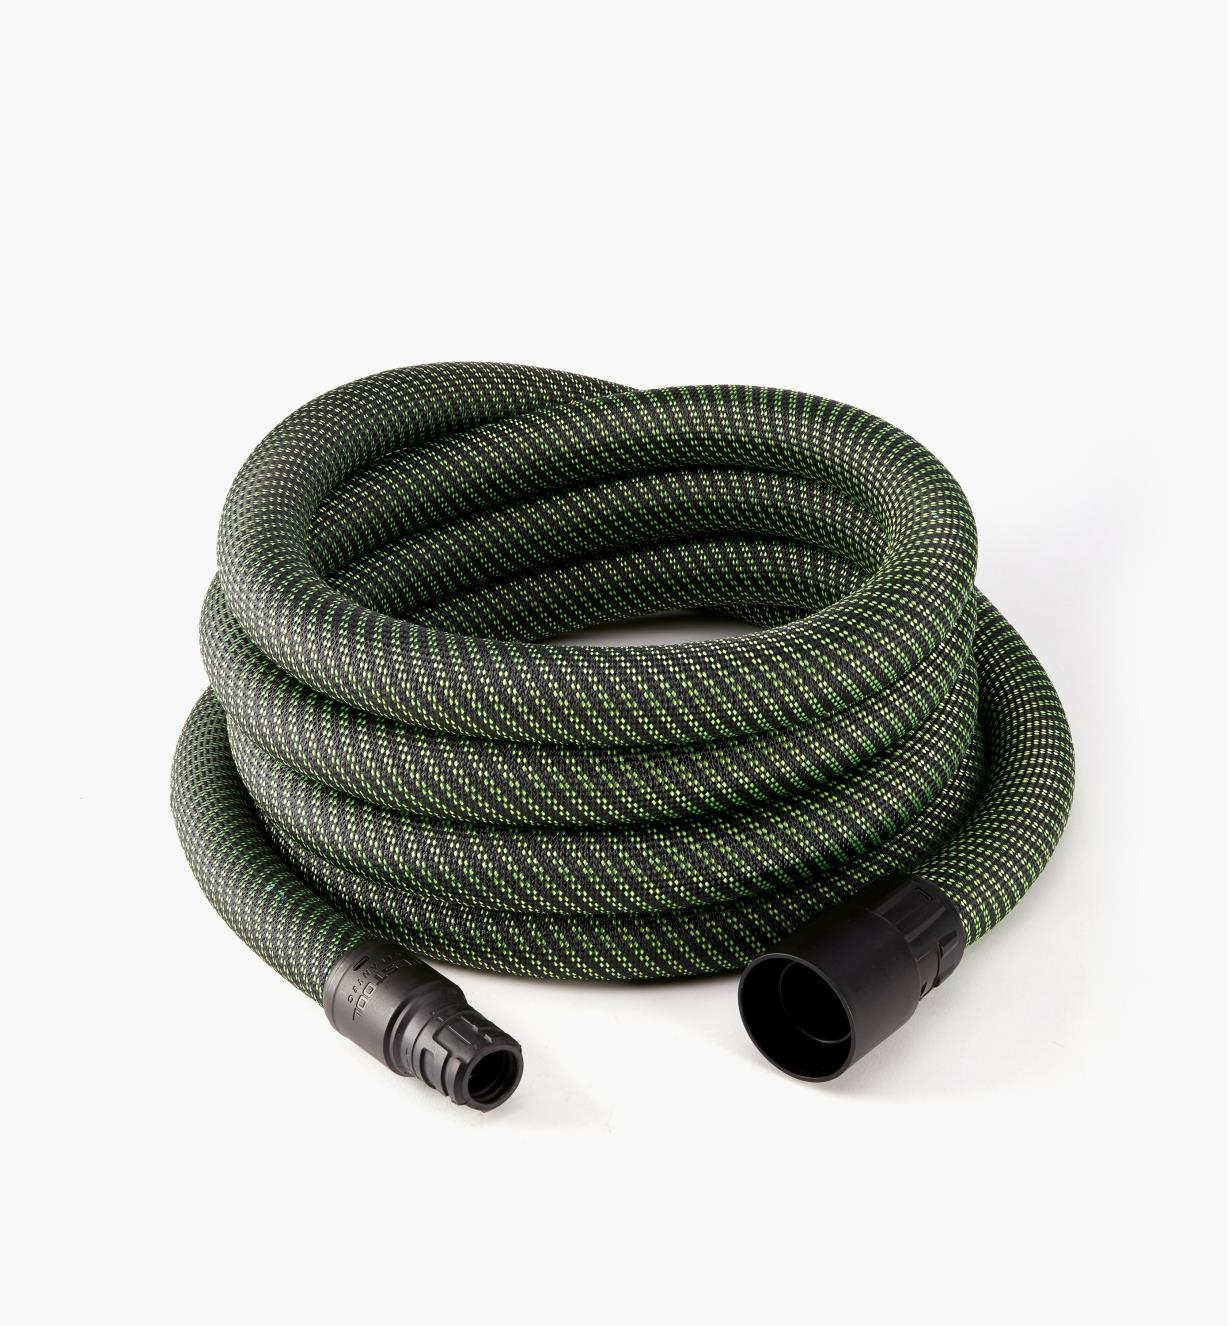 "ZA500678 - 27mm x 5m (1 1/16"" x 16'6"") Anti-static Hose"